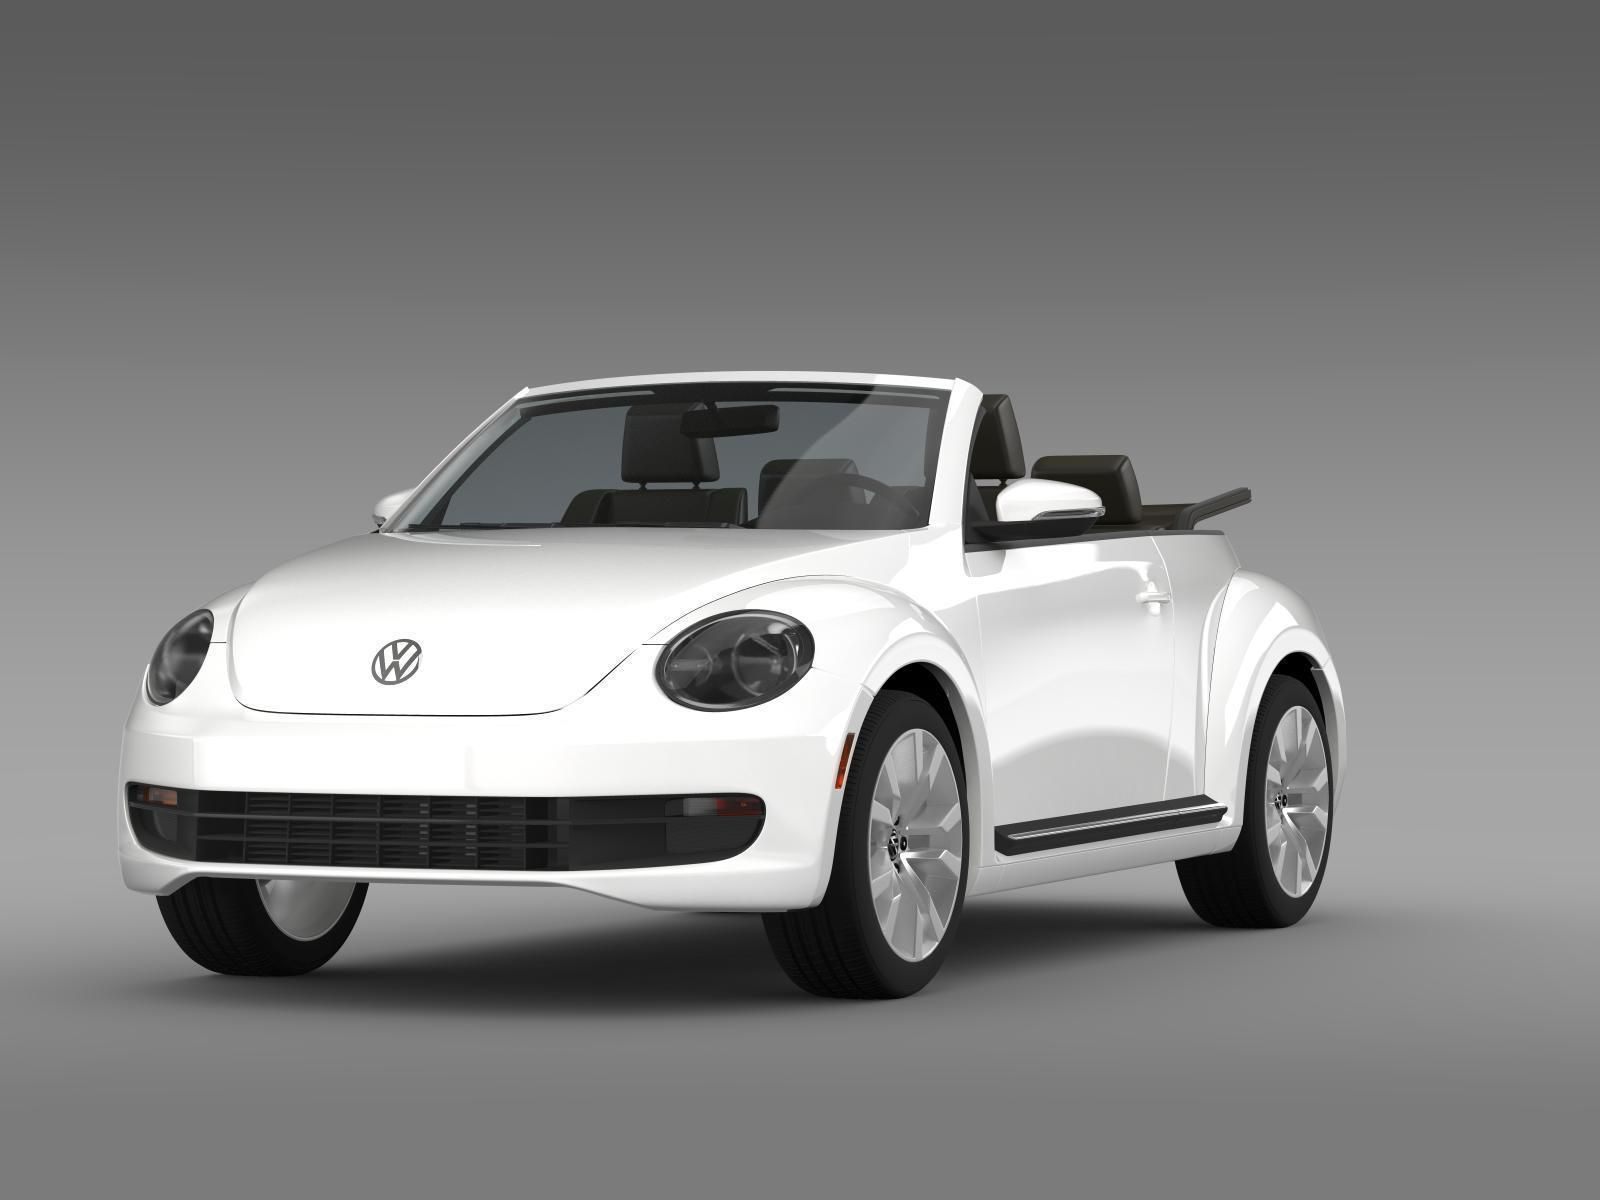 vw beetle tdi cabrio 2014 3d model max obj 3ds fbx c4d lwo lw lws. Black Bedroom Furniture Sets. Home Design Ideas